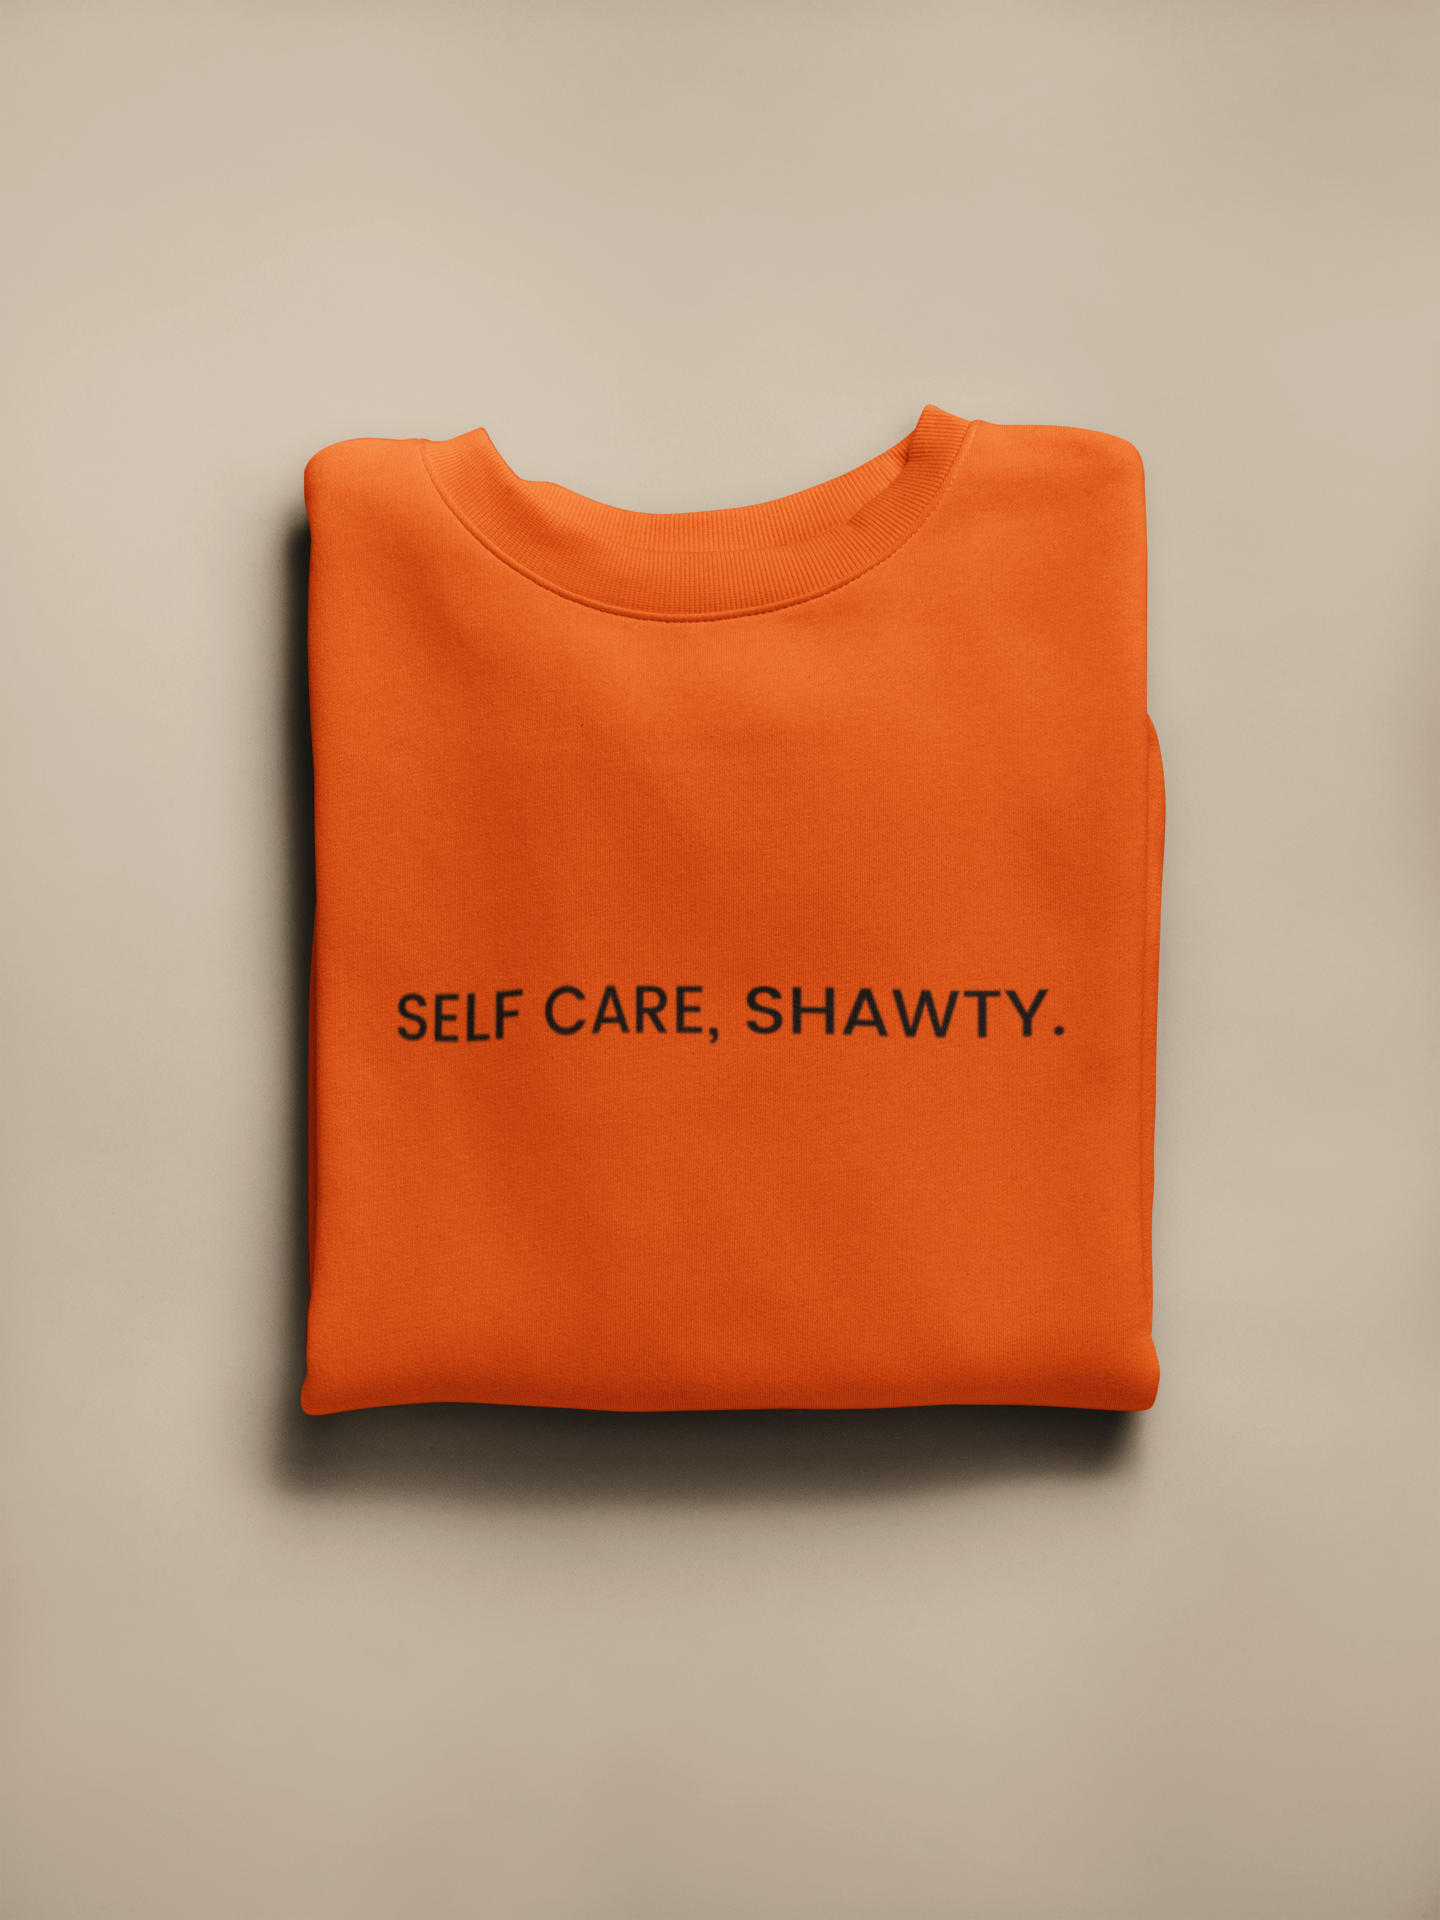 Self Care, Shawty. Crewneck